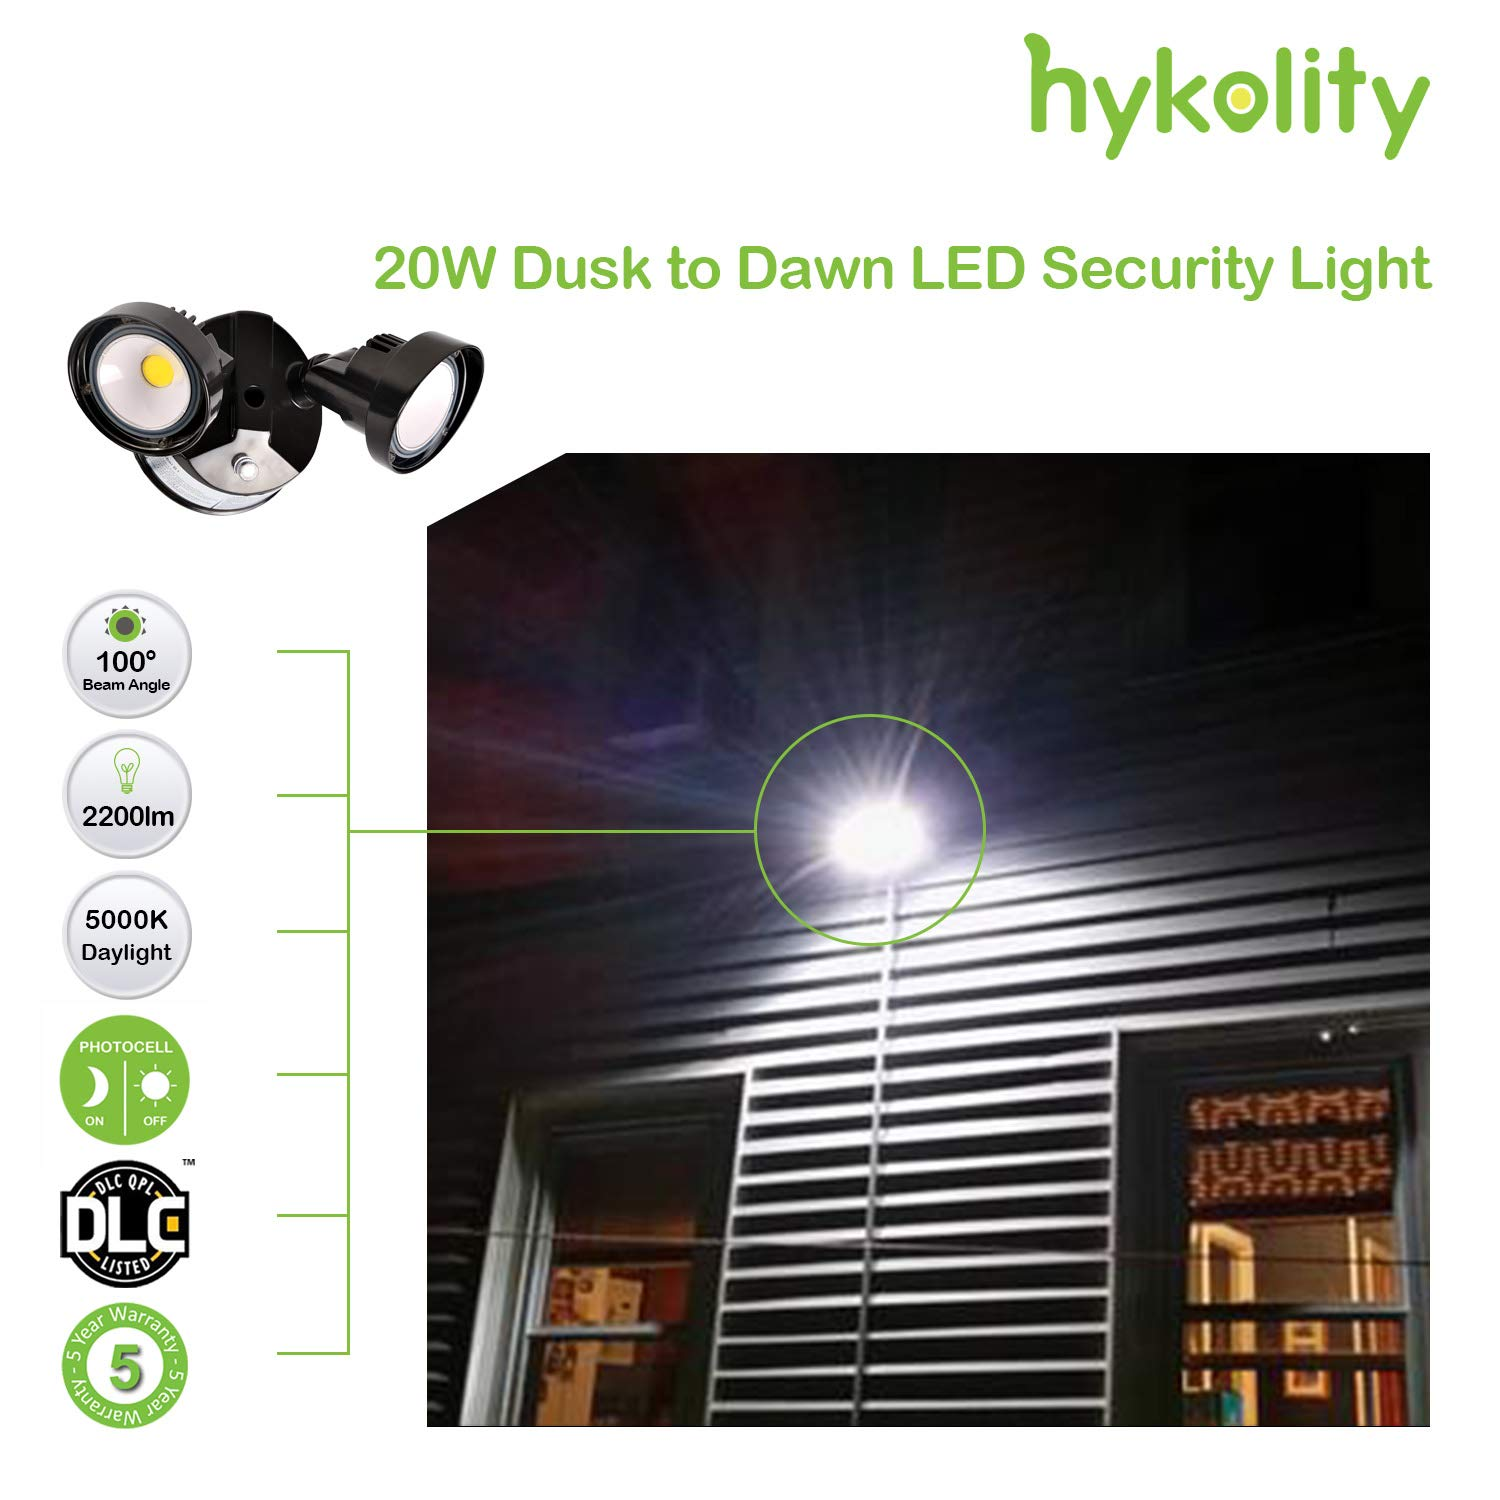 Hykolity 20w Dusk To Dawn Led Security Light Outdoor Wall Mount Photocells For Lights Floodlight 150w Equivalent 2200lm 5000k Ip65 Waterproof Adjustable Dual Head